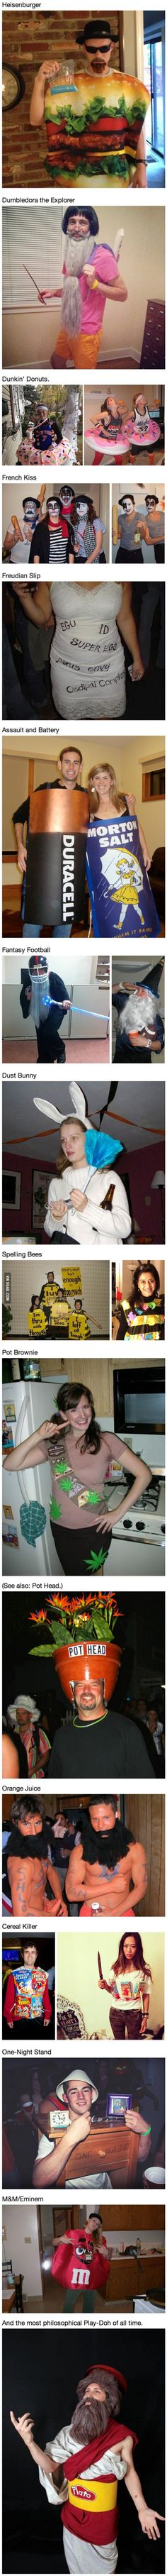 9GAG - These people are doing Halloween right.